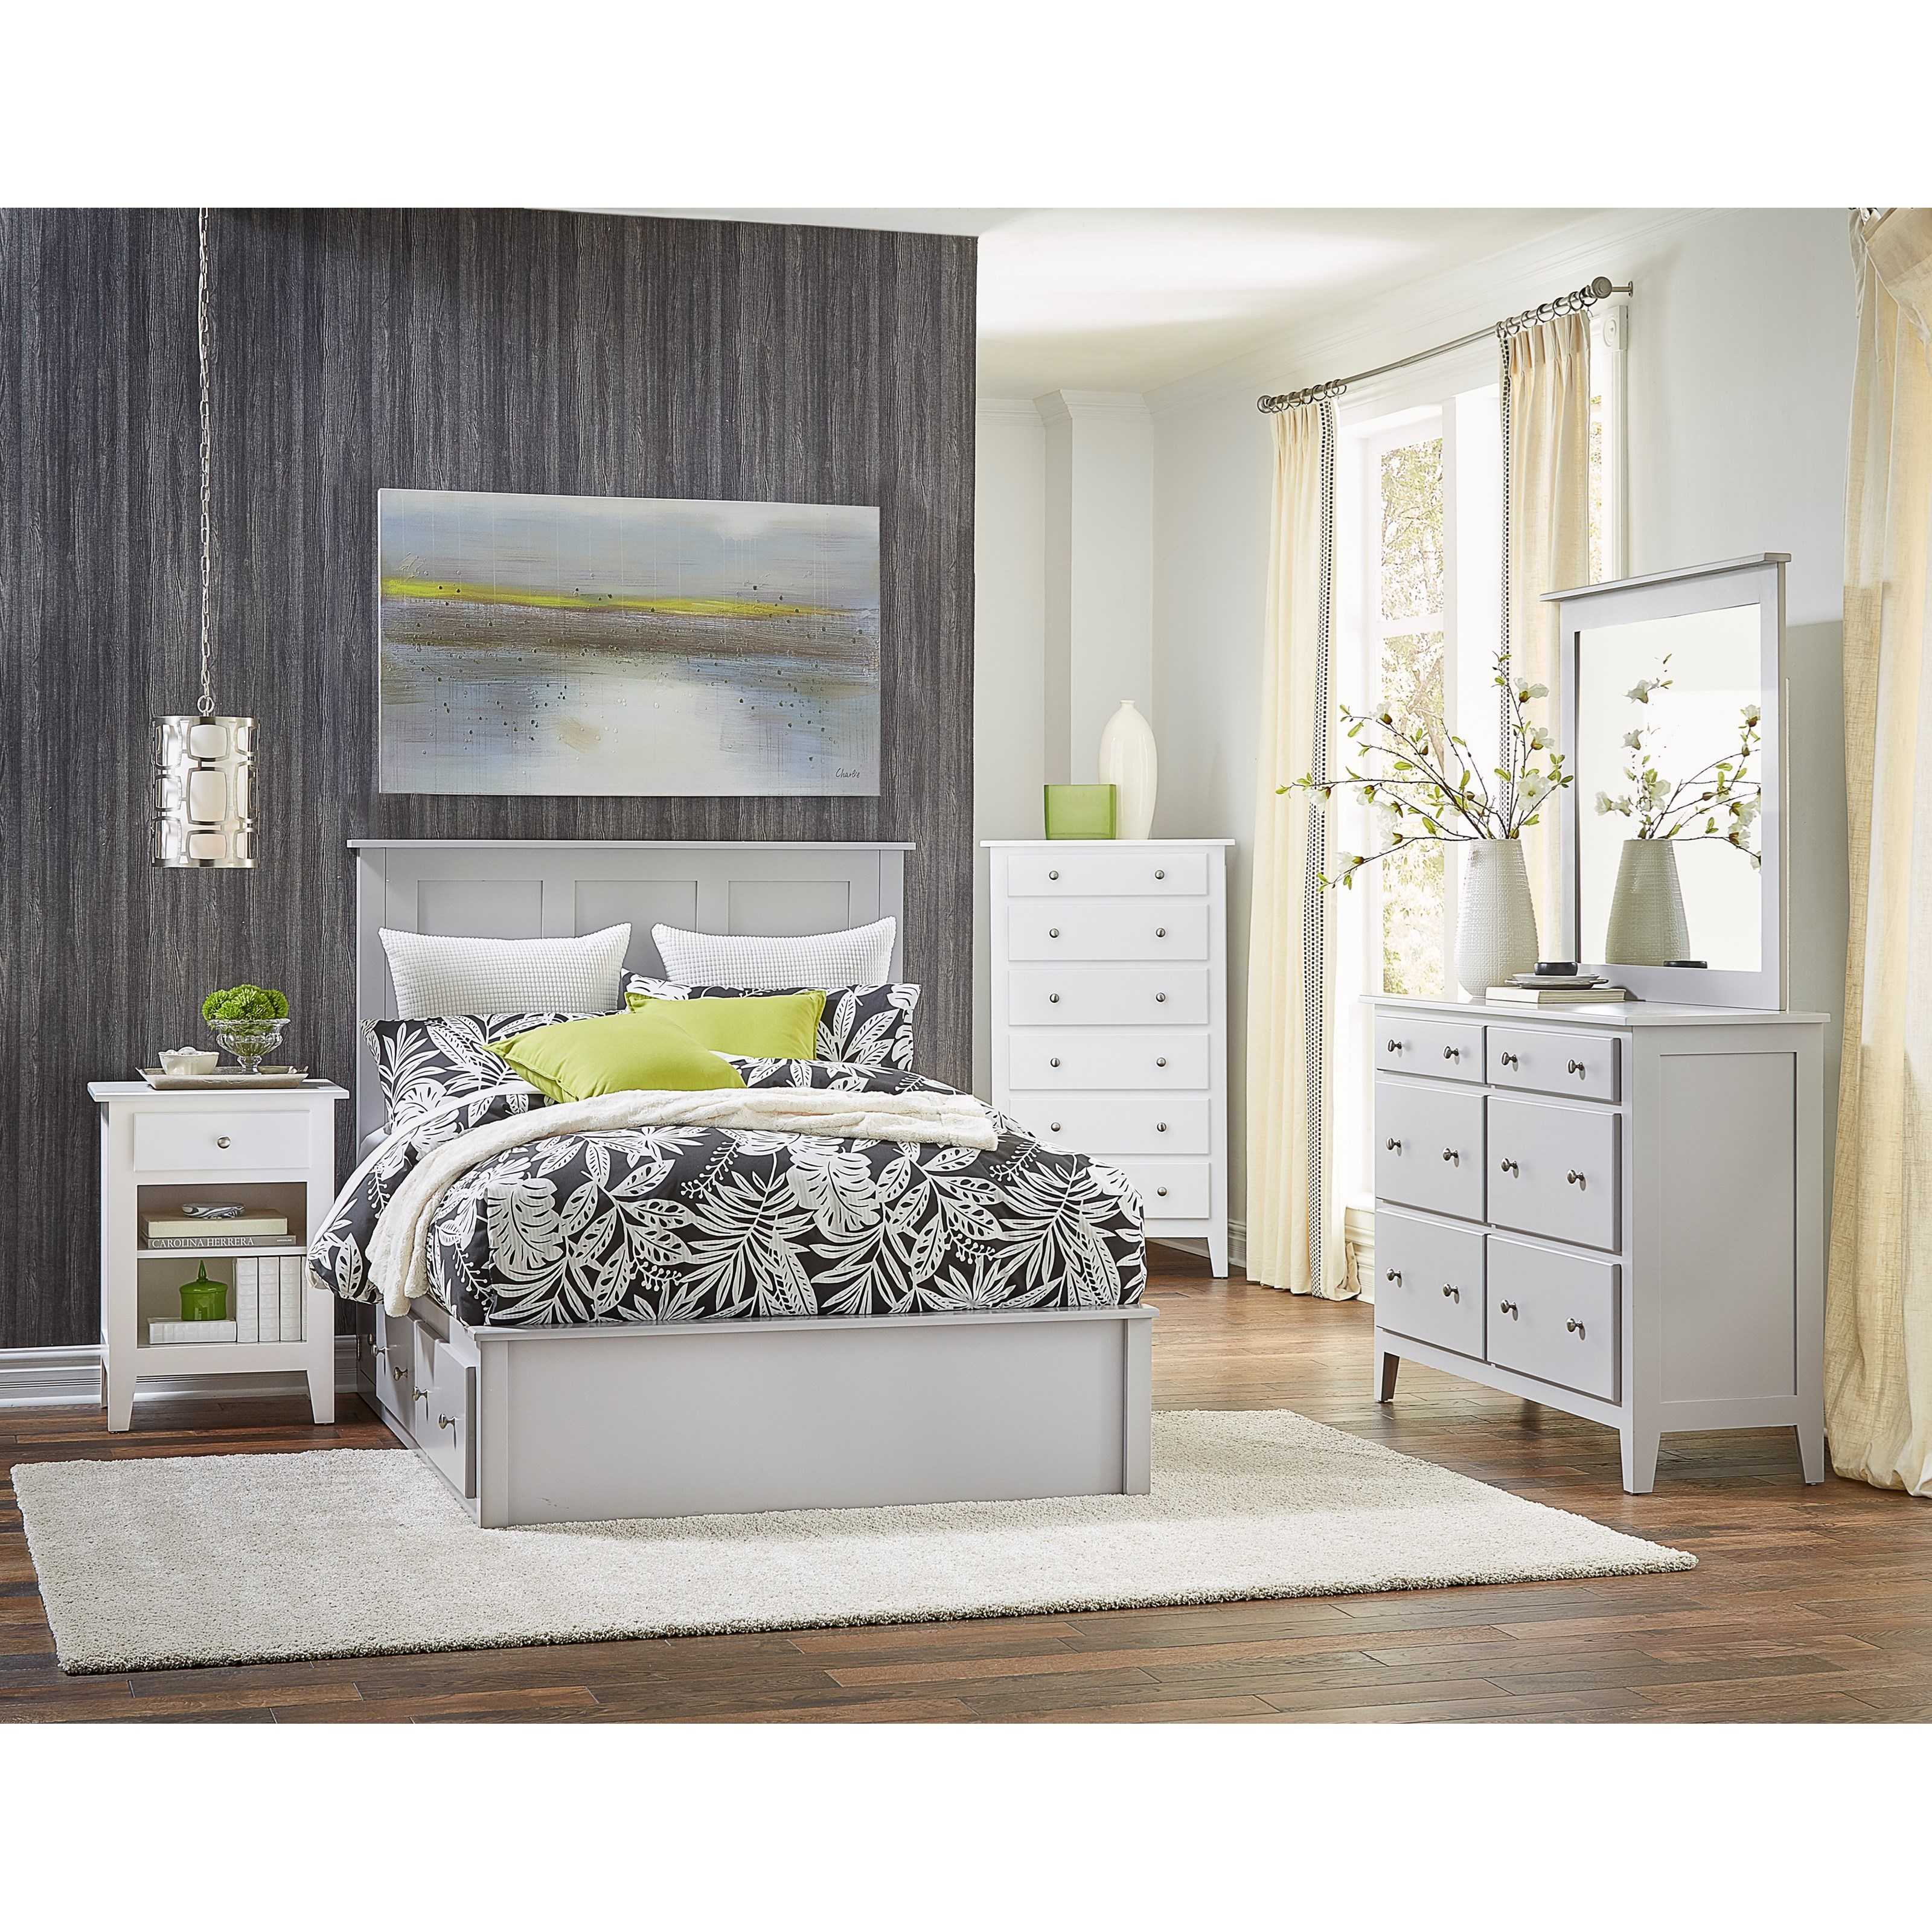 Mapleton King Bedroom Group by Daniel's Amish at Saugerties Furniture Mart